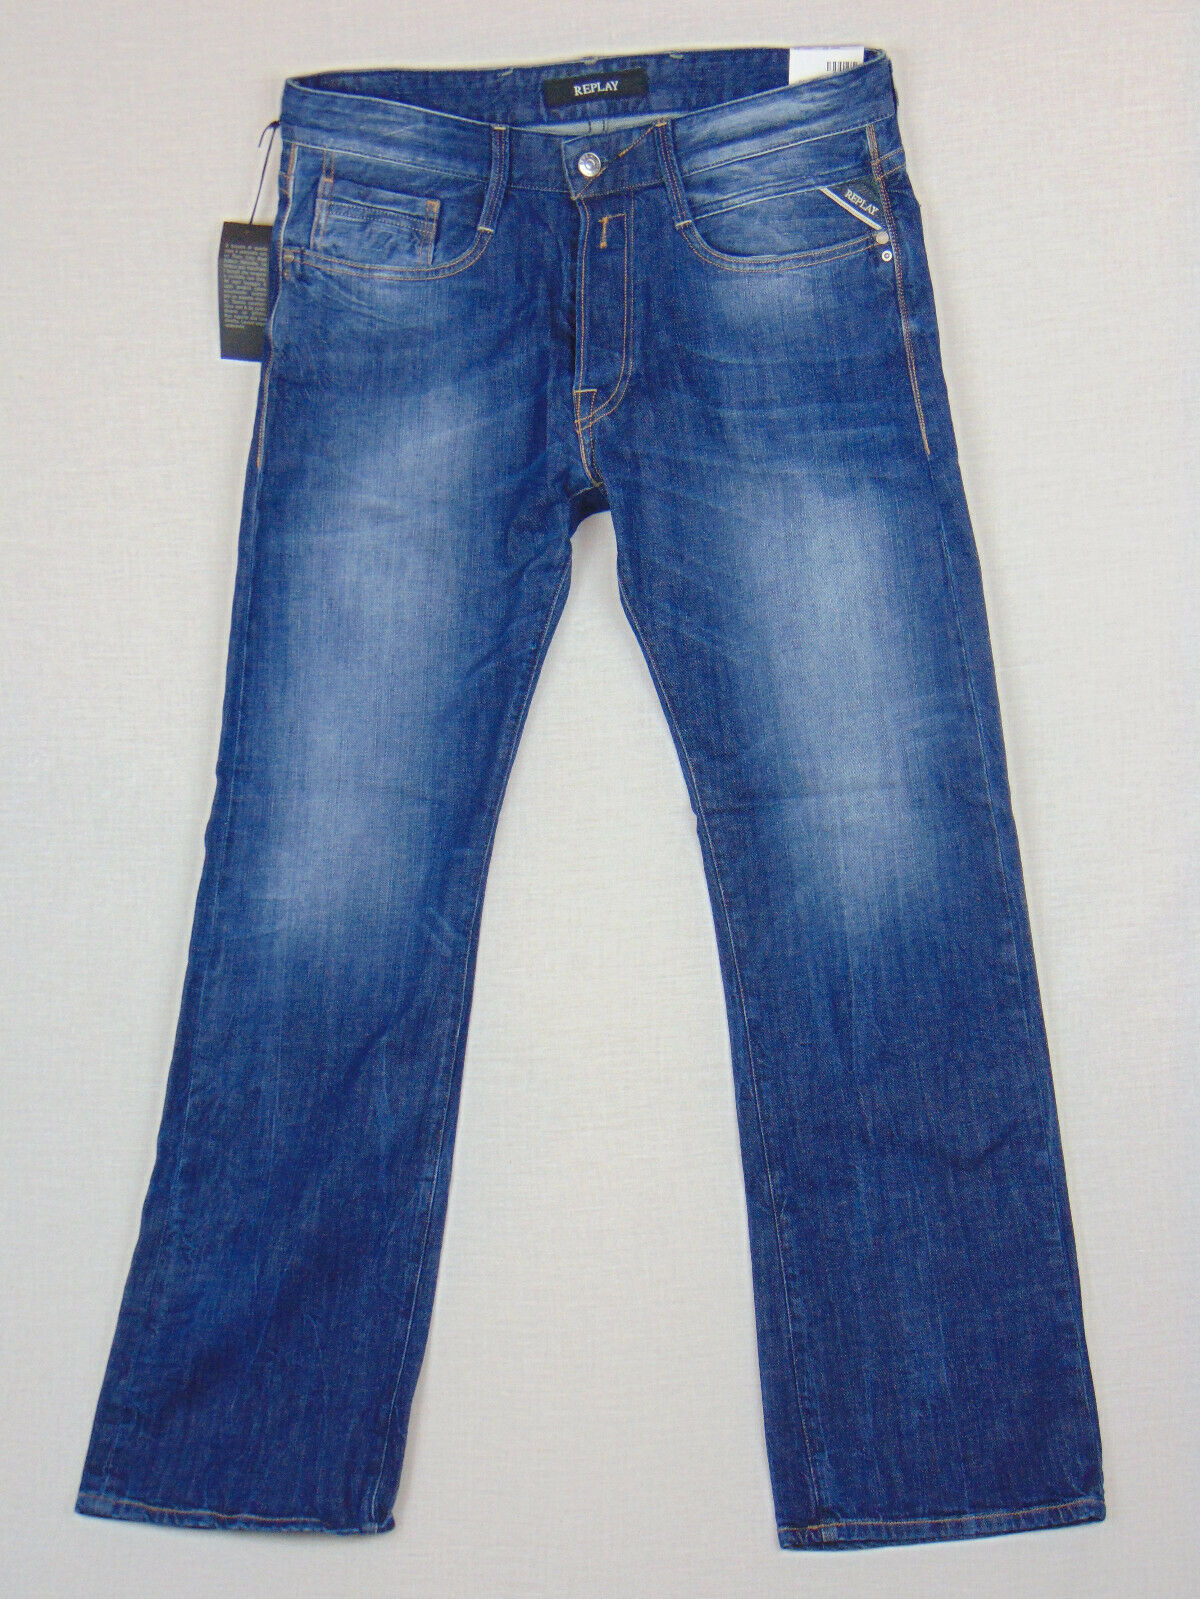 Replay BILLSTRONG Stiefelcut W32 L32 Mens Blau Comfort Denim Jeans